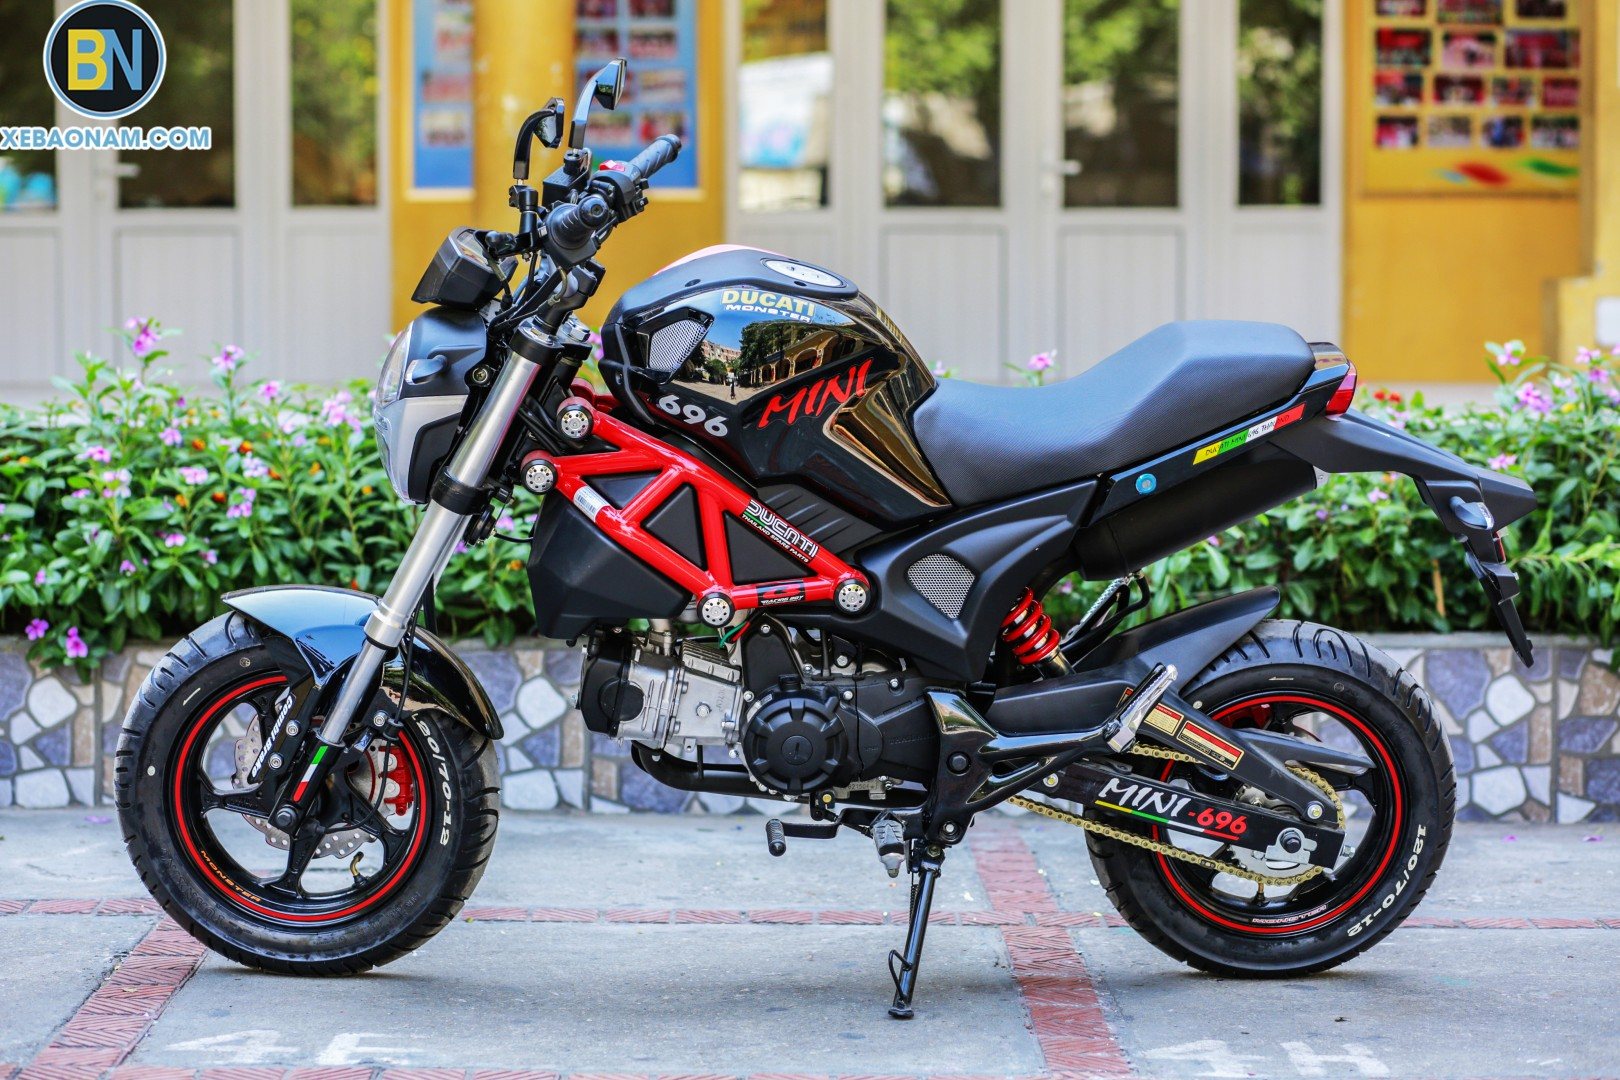 xe-may-ducati-mini-monster-110-xebaonam(23)